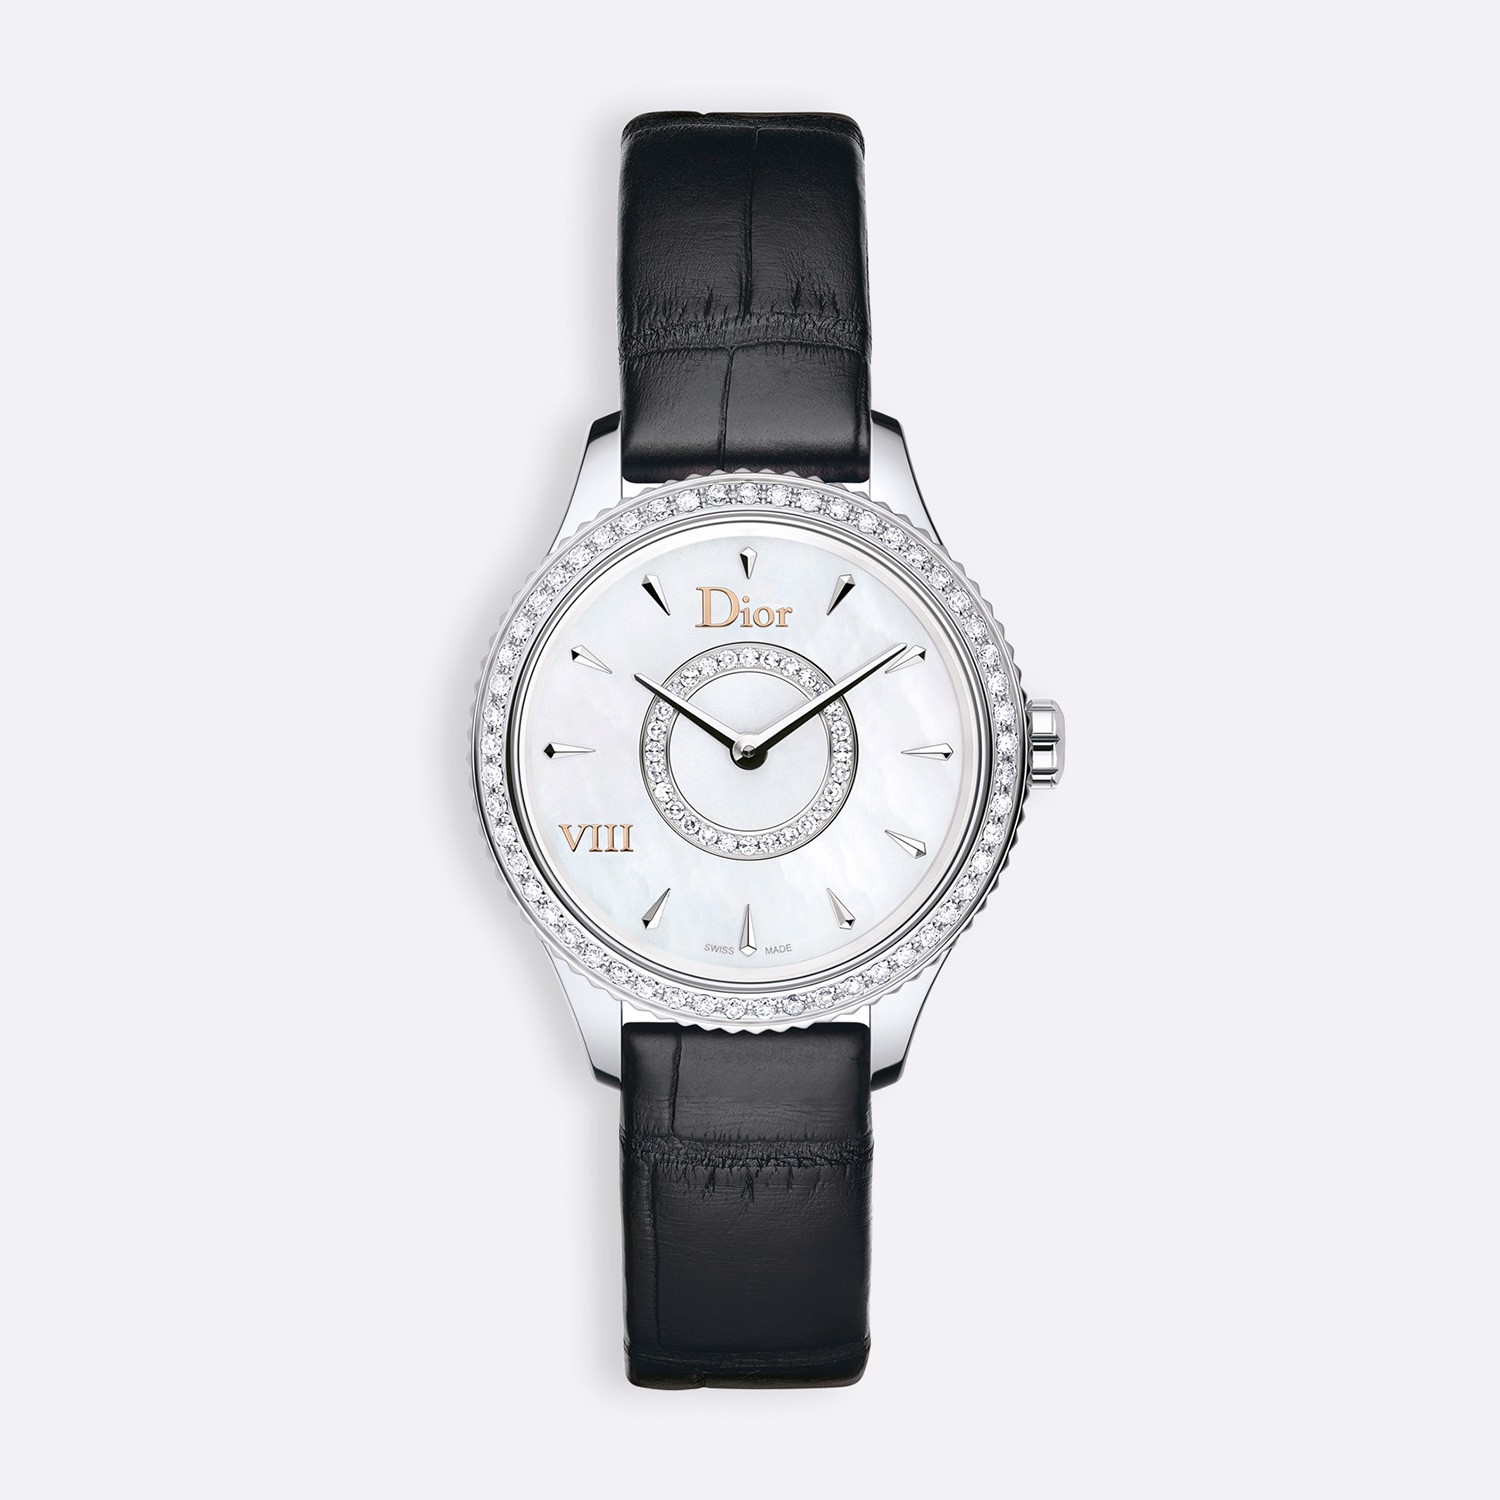 Đồng hồ nữ Dior VIII Montaigne Diamonds Leather Strap Ø 25mm